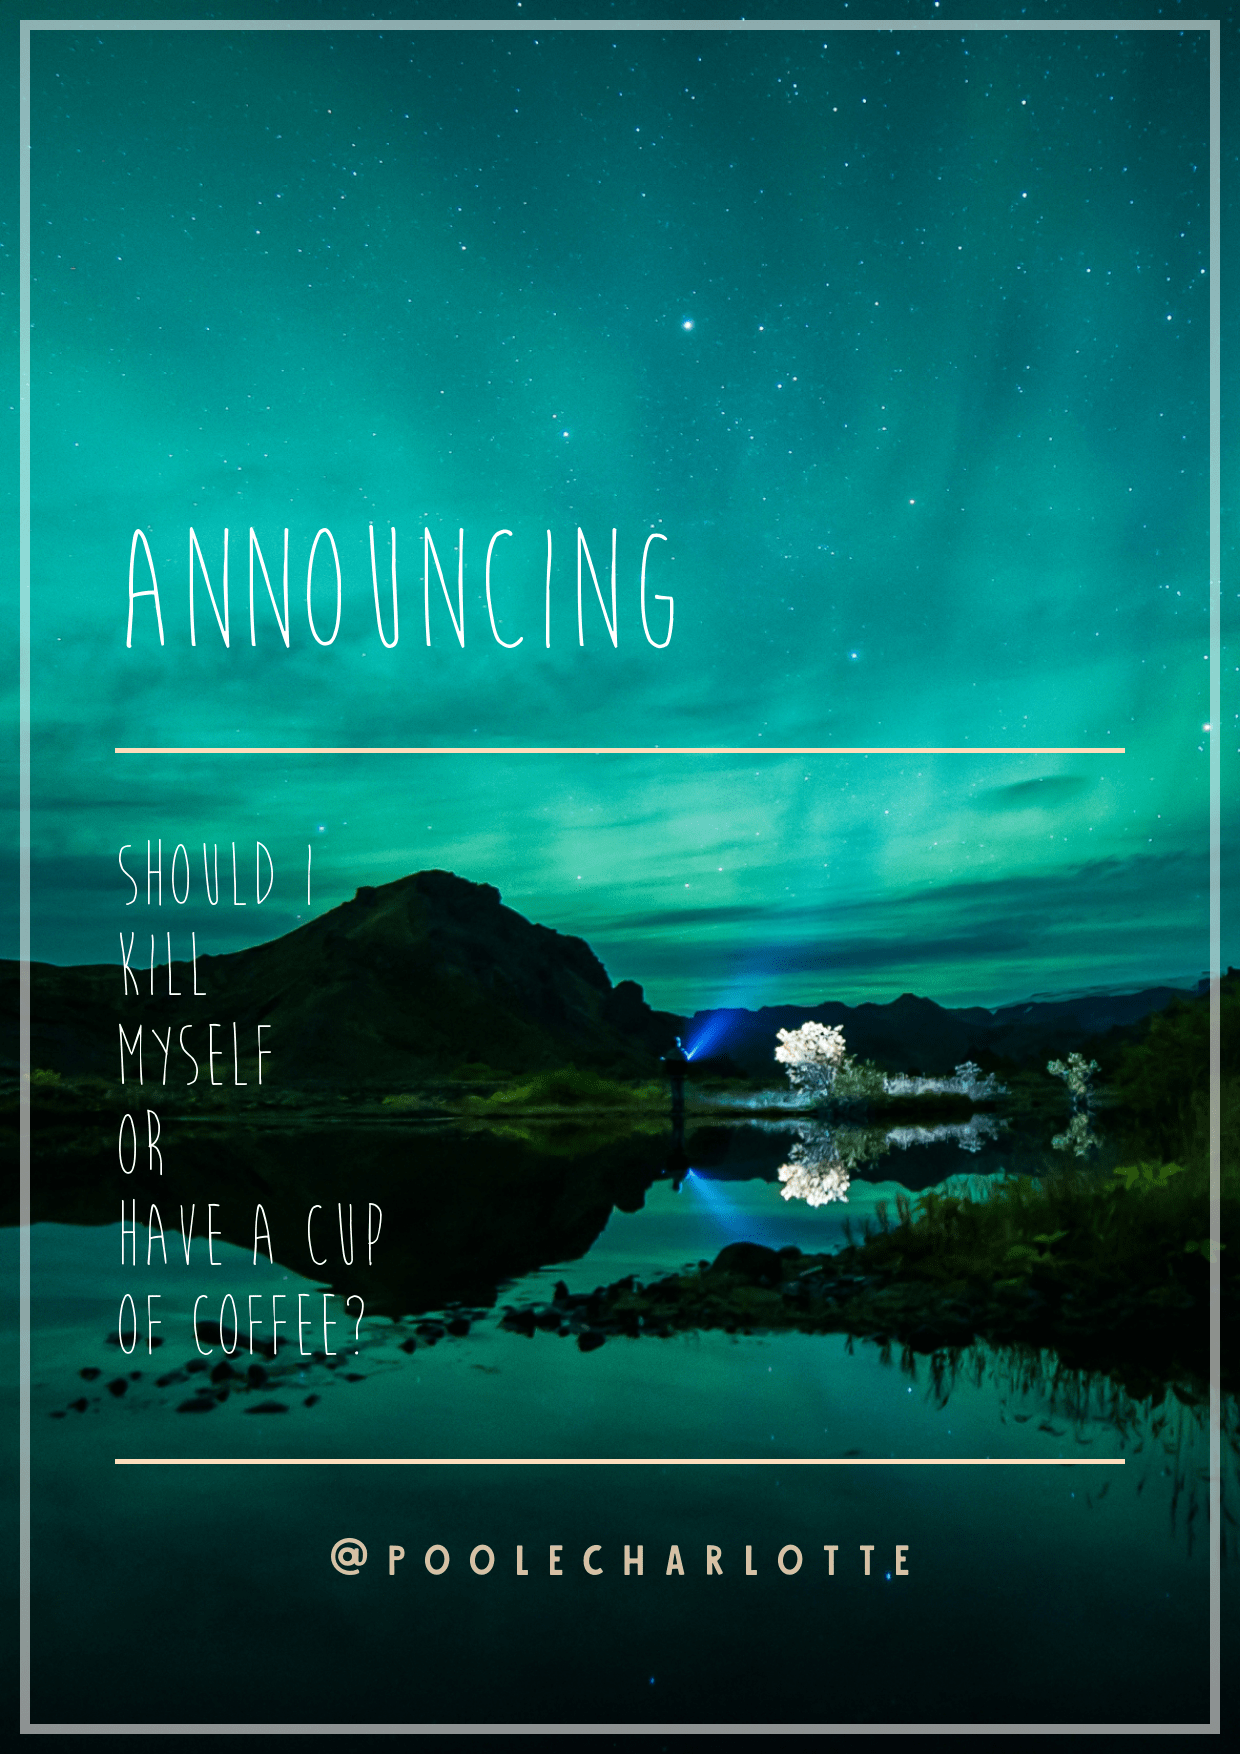 Nature,                Sky,                Atmosphere,                Text,                Reflection,                Poster,                Calm,                Water,                Font,                Resources,                Wallpaper,                Night,                Aurora,                 Free Image